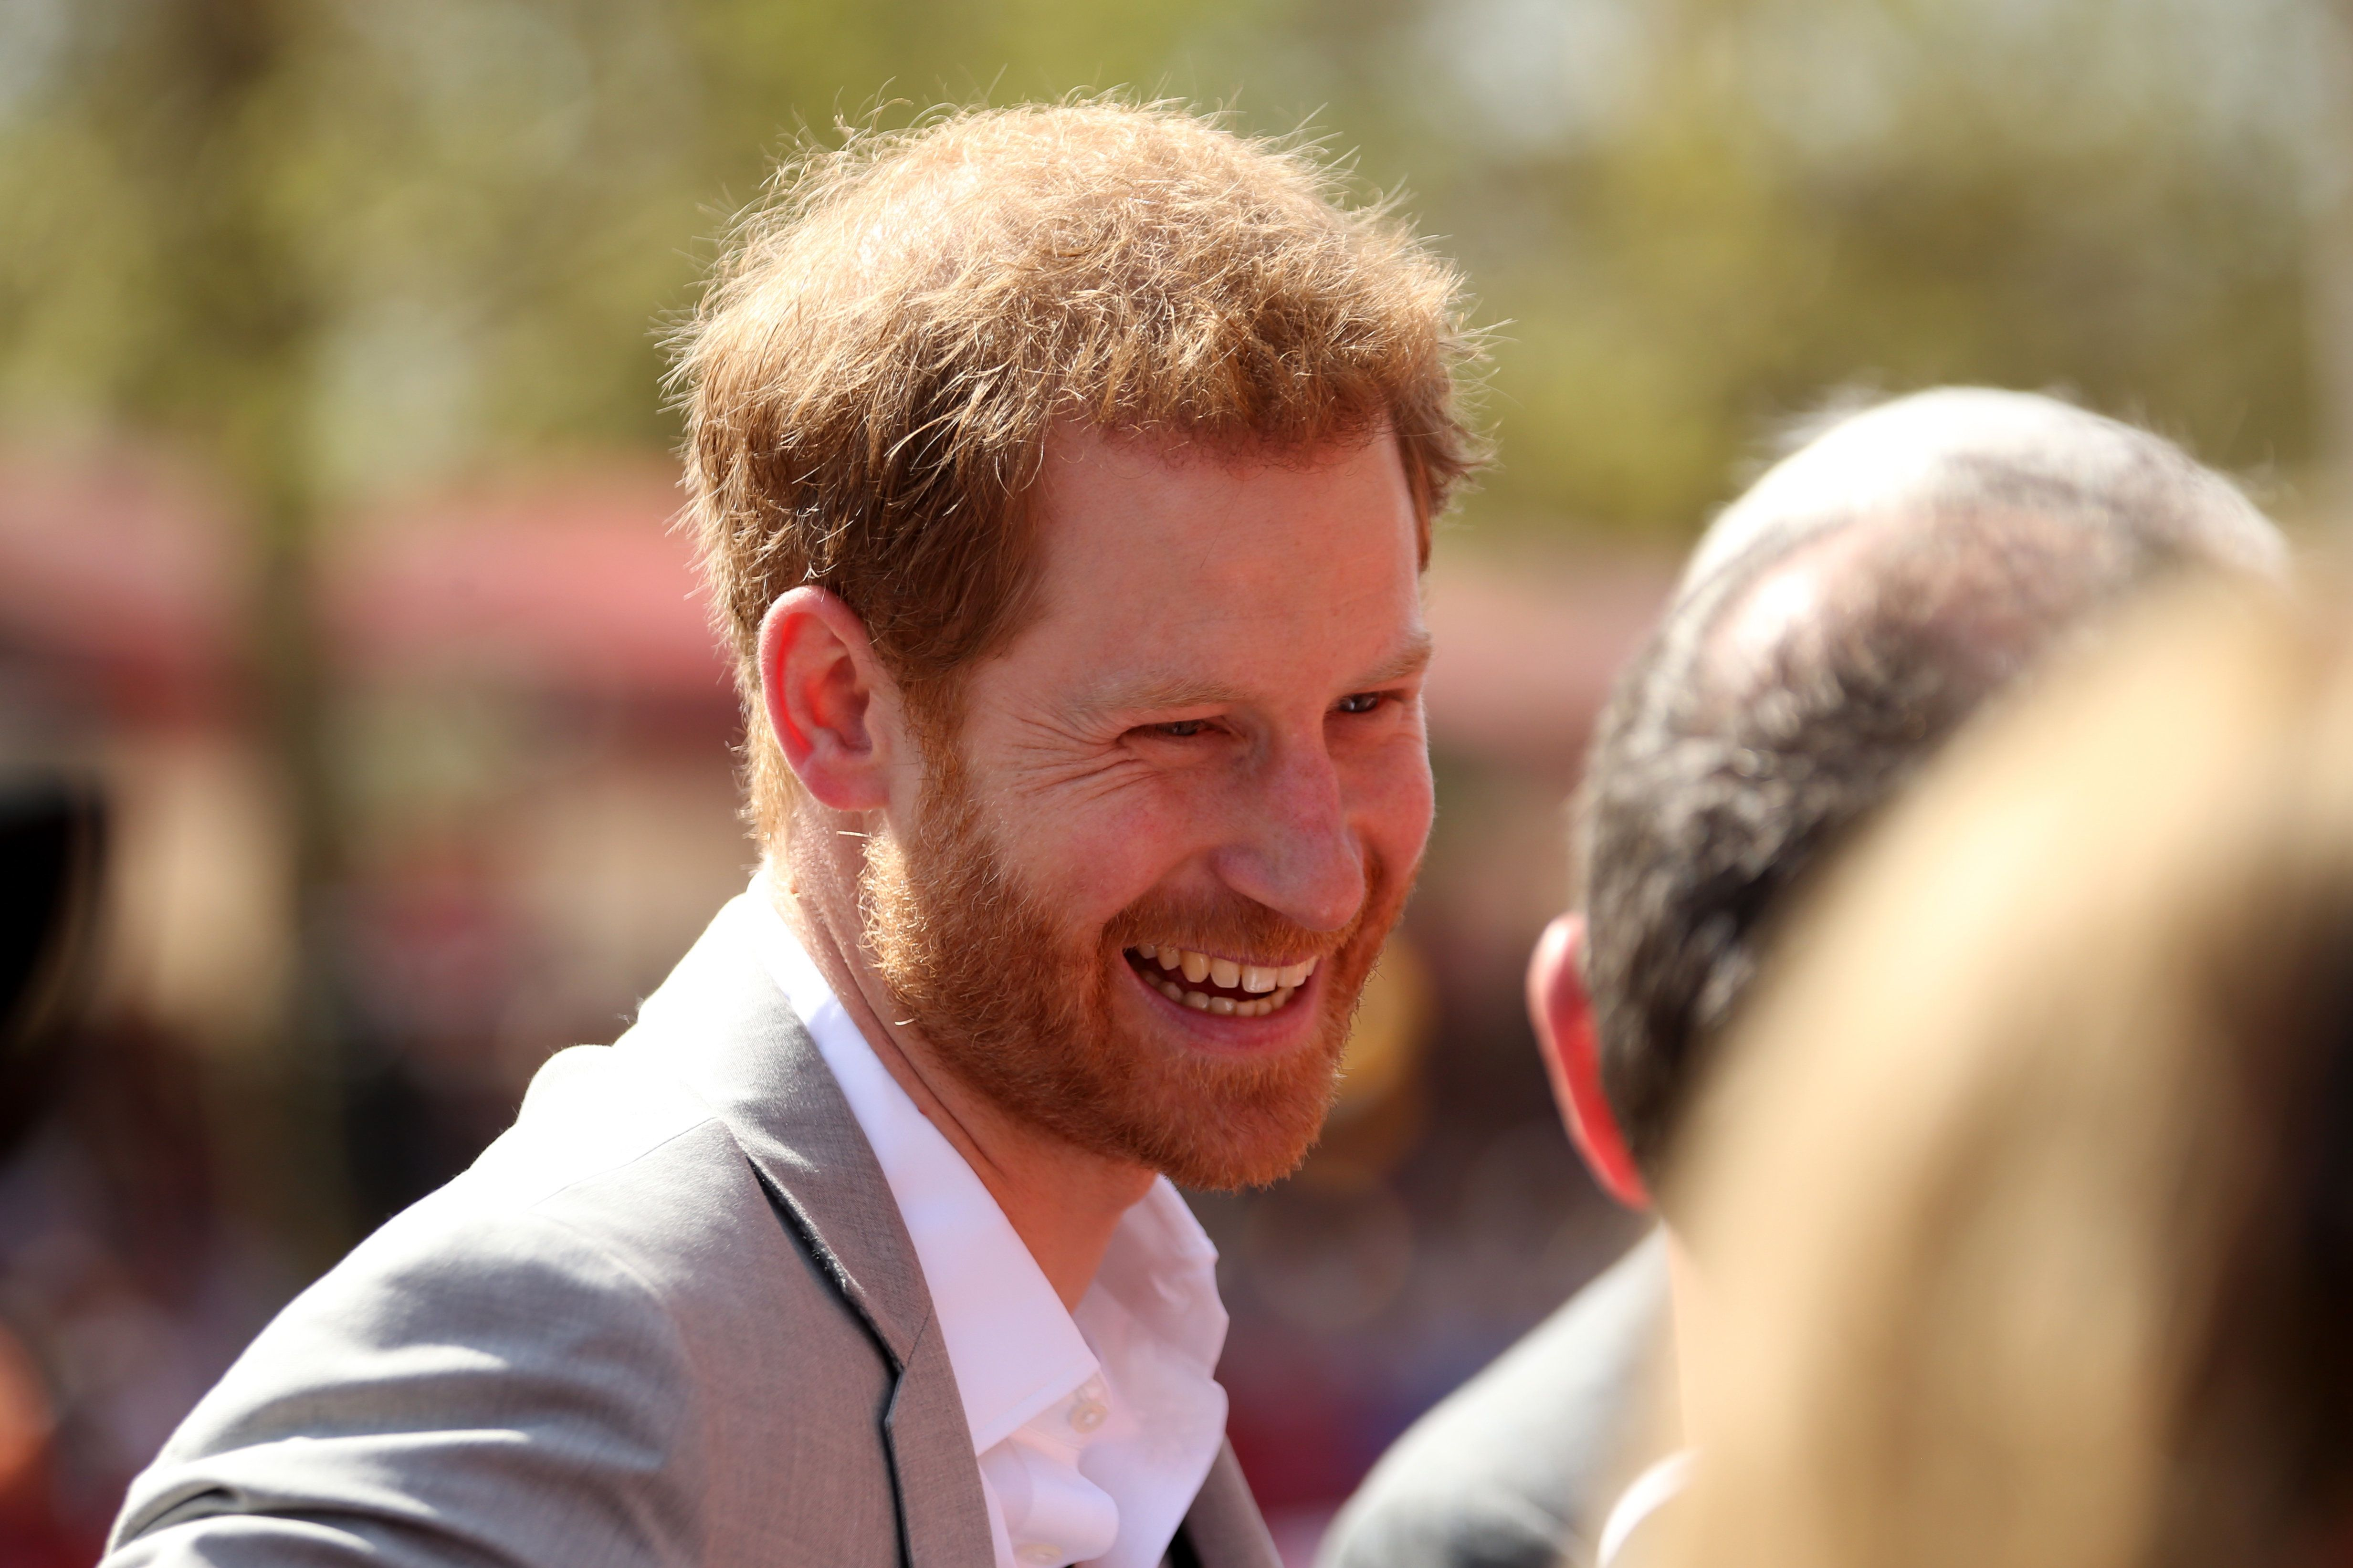 Prince Harry's full title isHis Royal Highness Prince Henry Charles Albert David of Wales. And, no, Wales is not his la